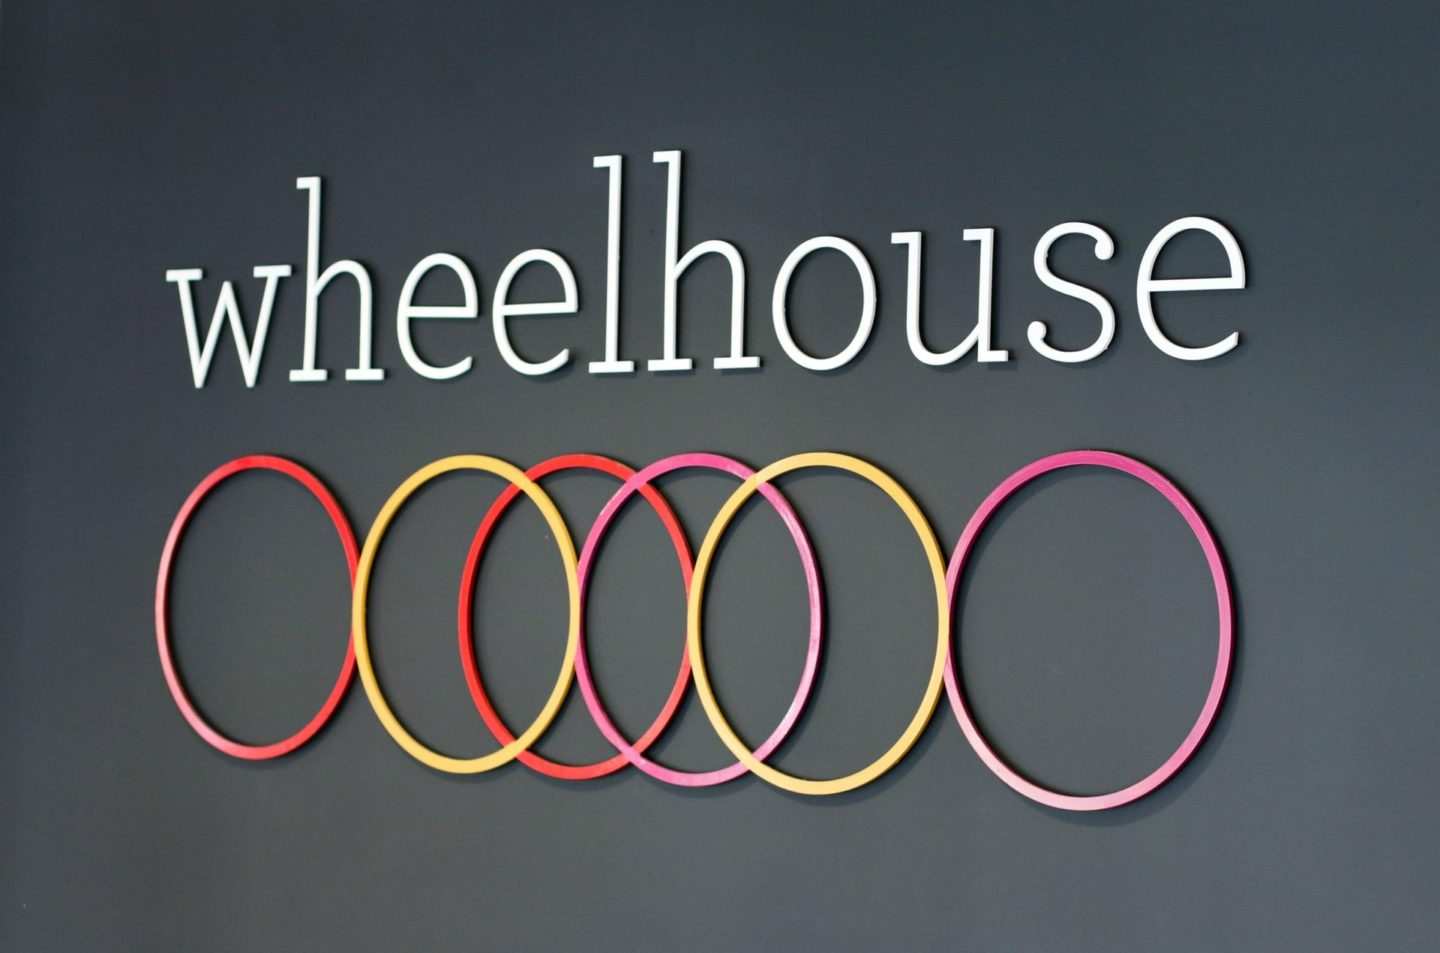 Spinning At Wheelhouse Cycle: The Most Inspiring Workout Ever